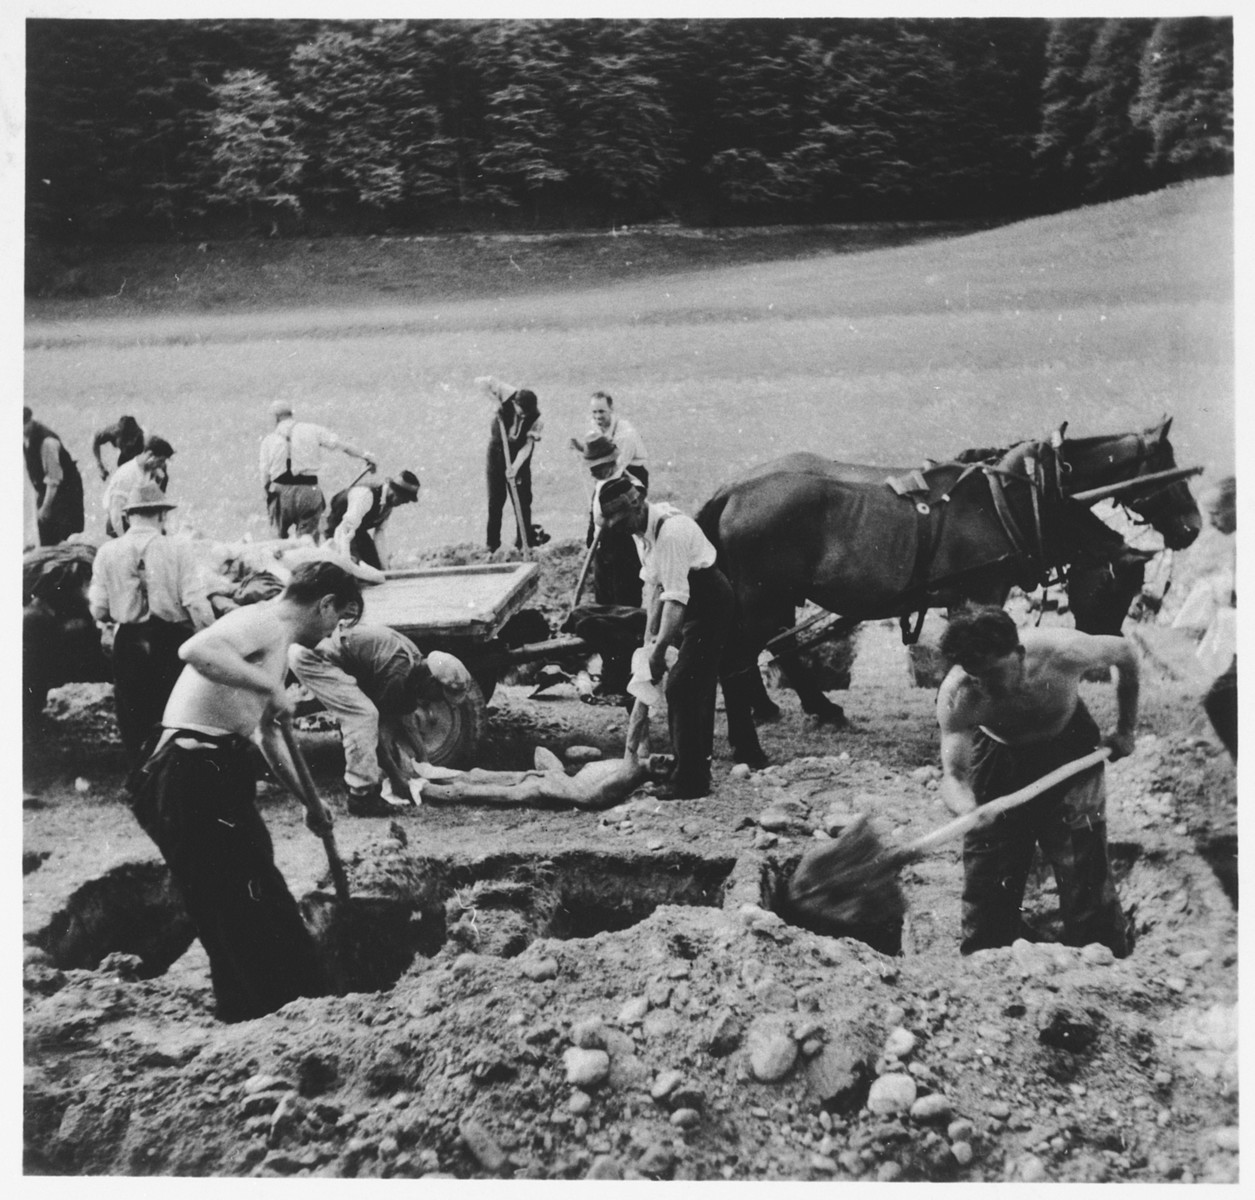 Austrian civilians bury the corpses of those who perished at Ebensee.